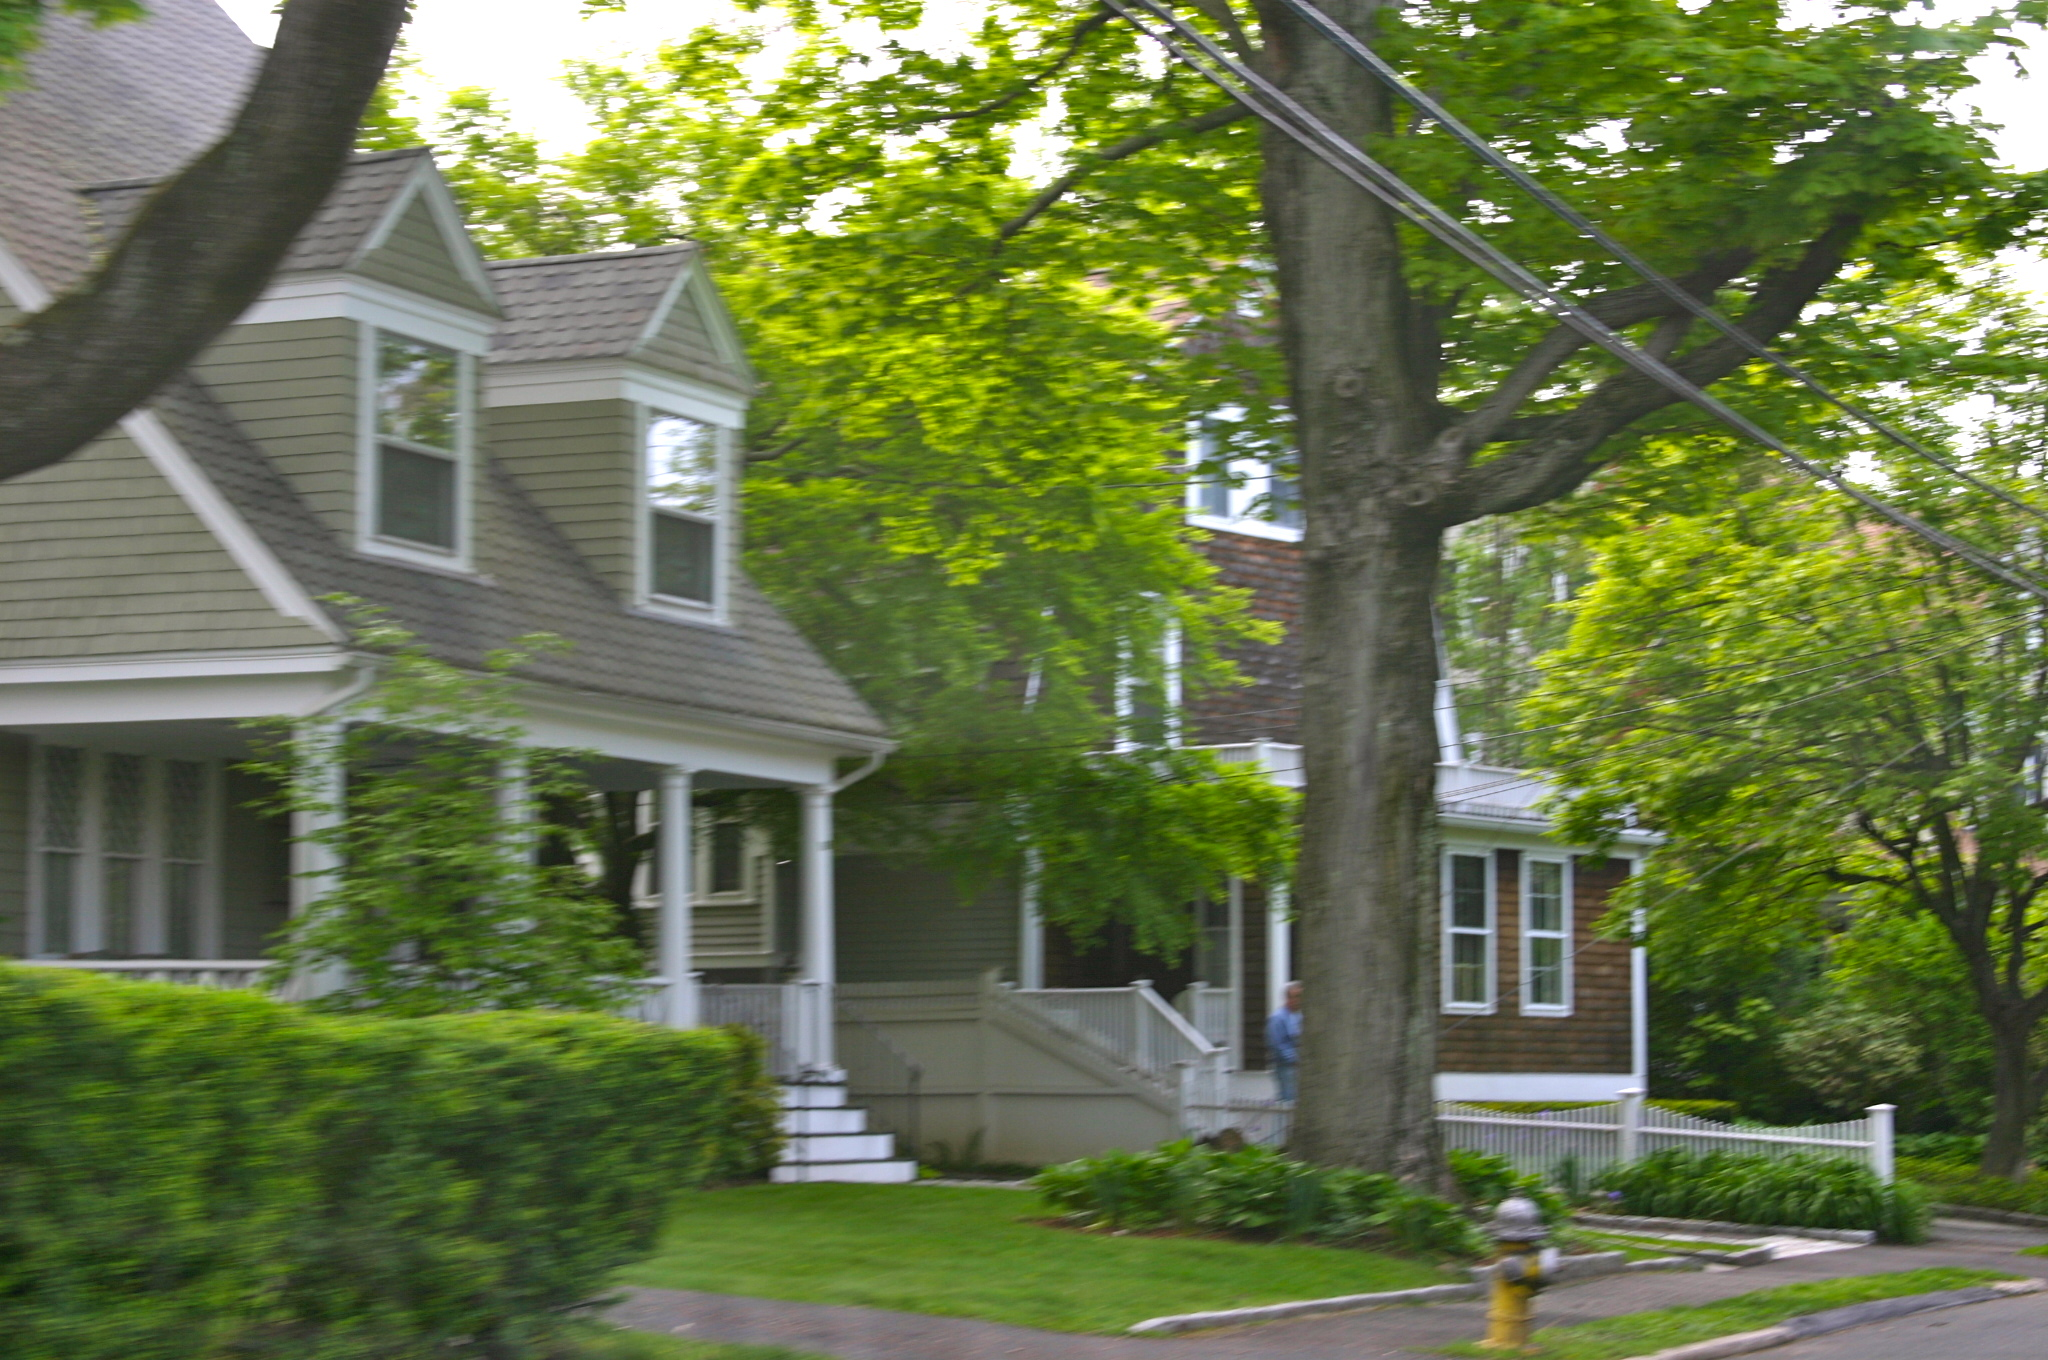 Maher Ave., Greenwich, CT, May 2012